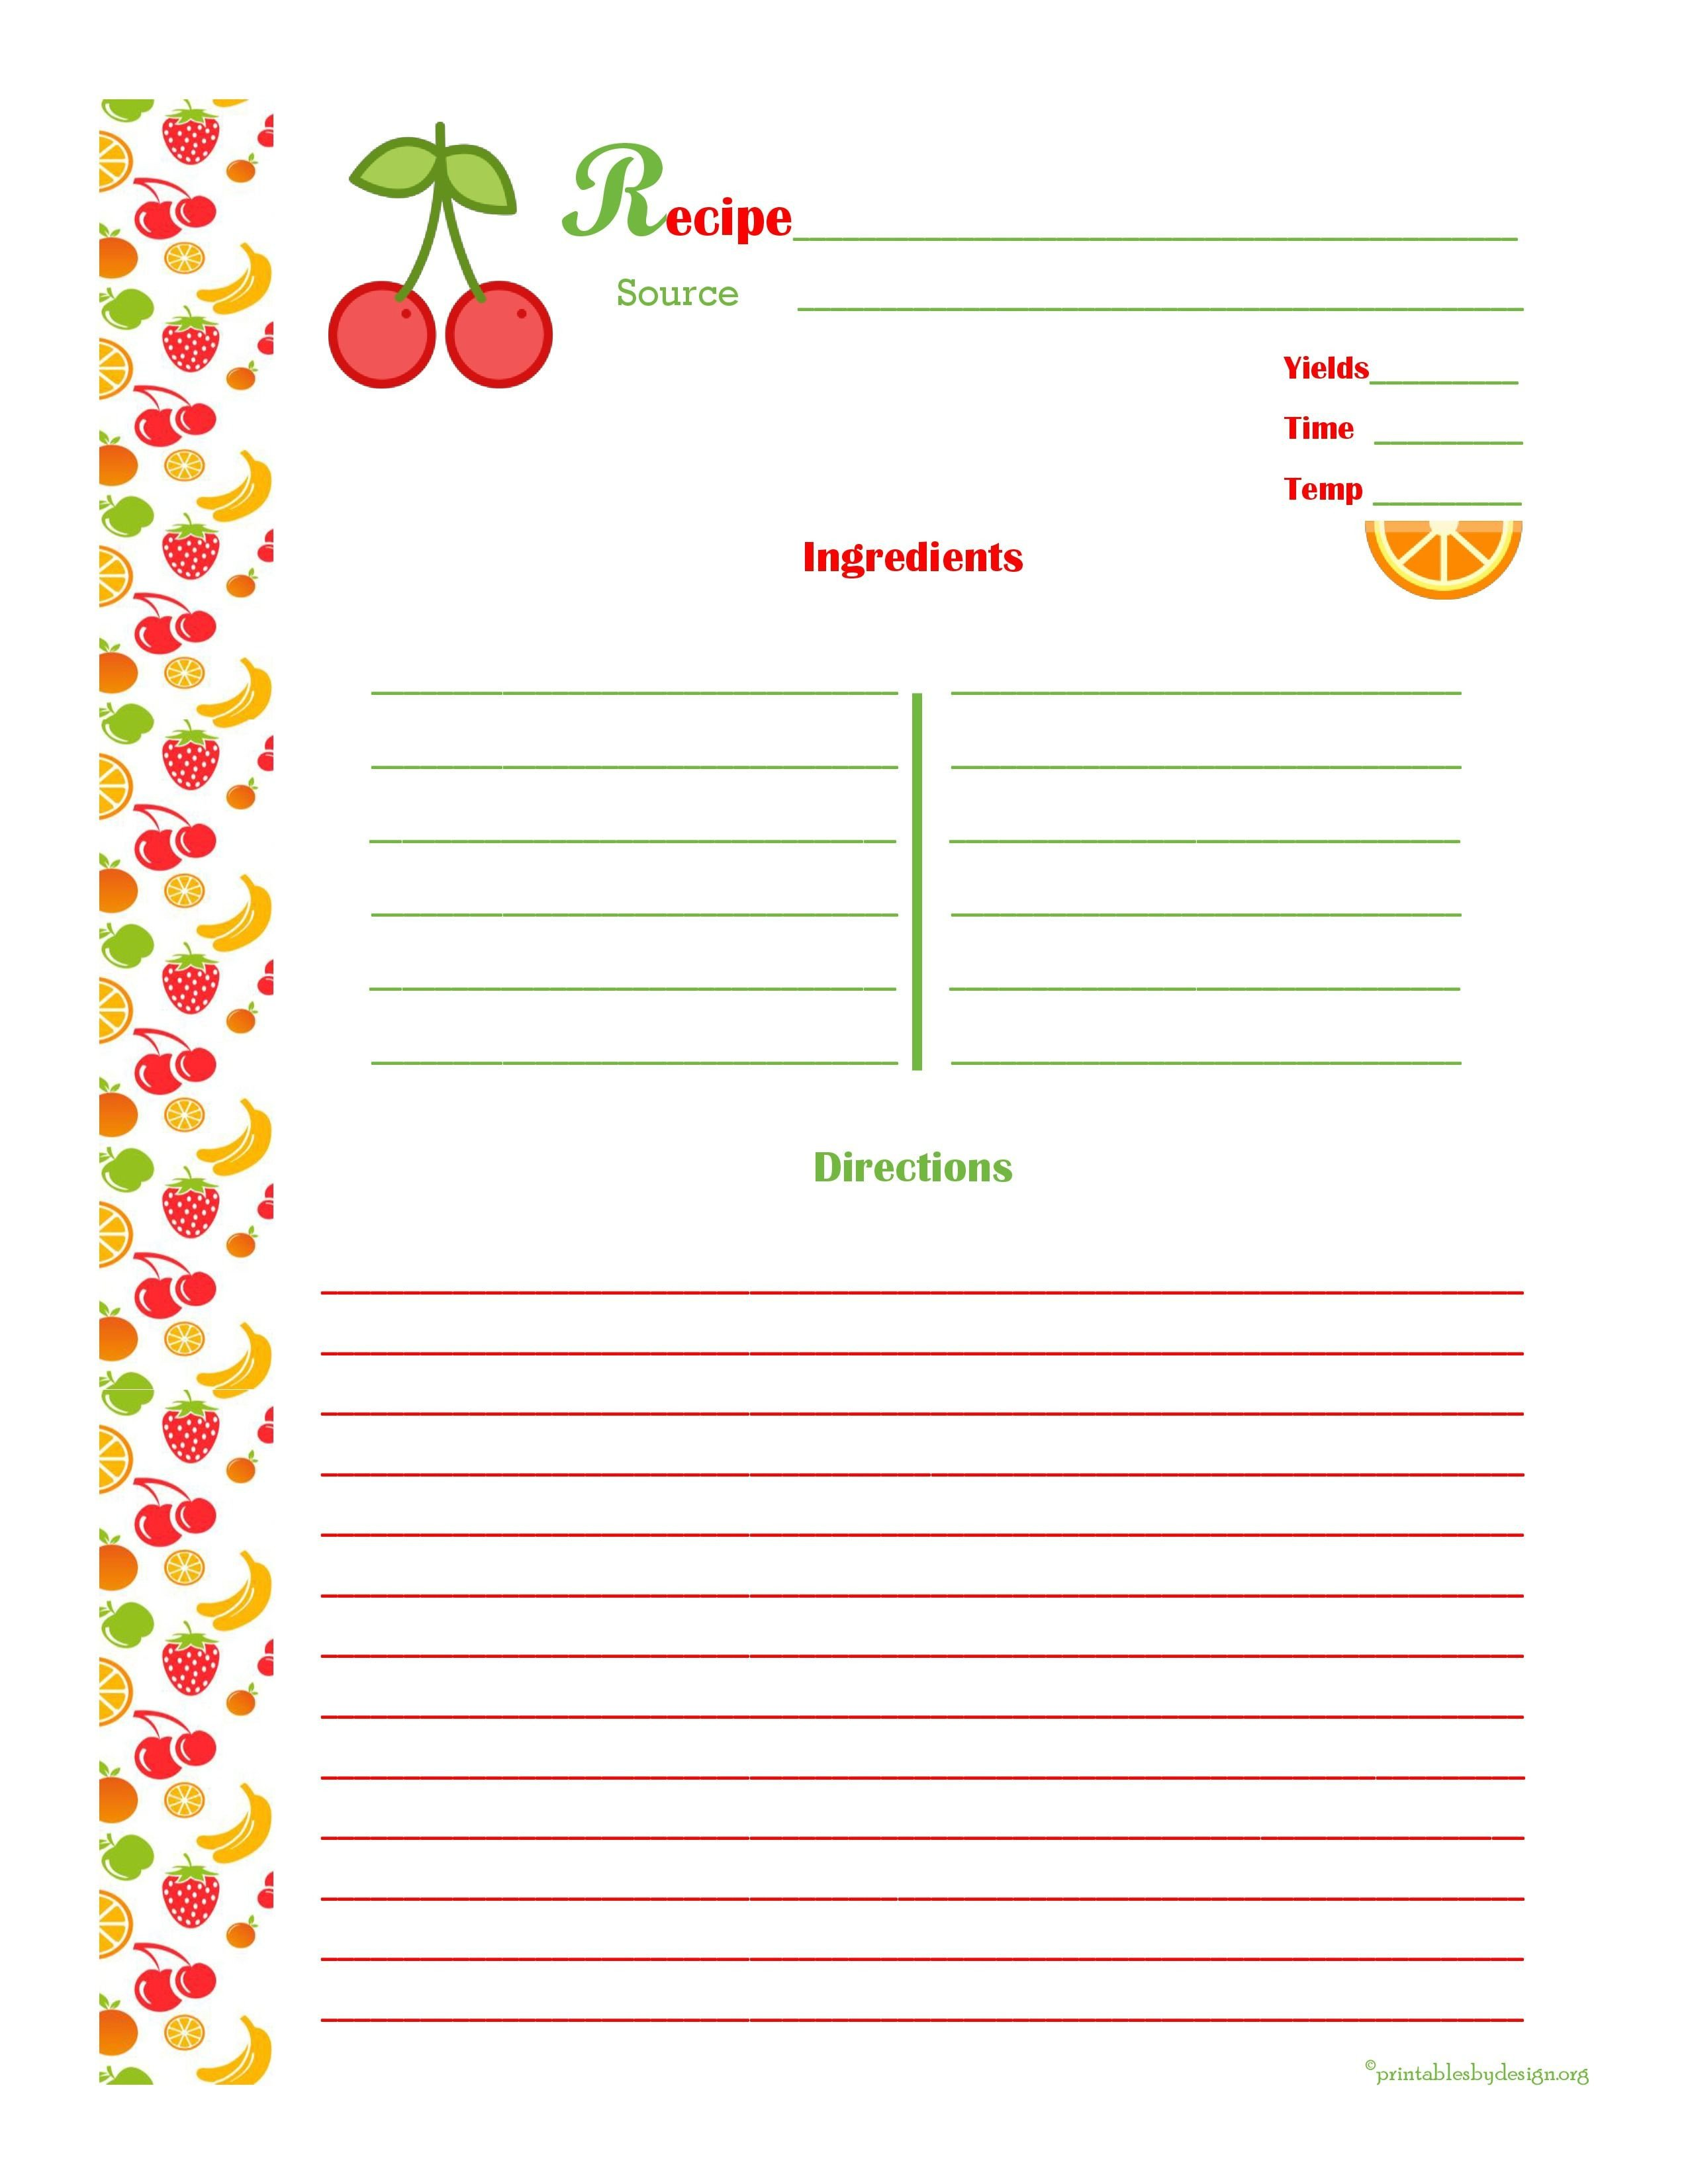 Recipe Templates for Pages Cherry & orange Recipe Card Full Page